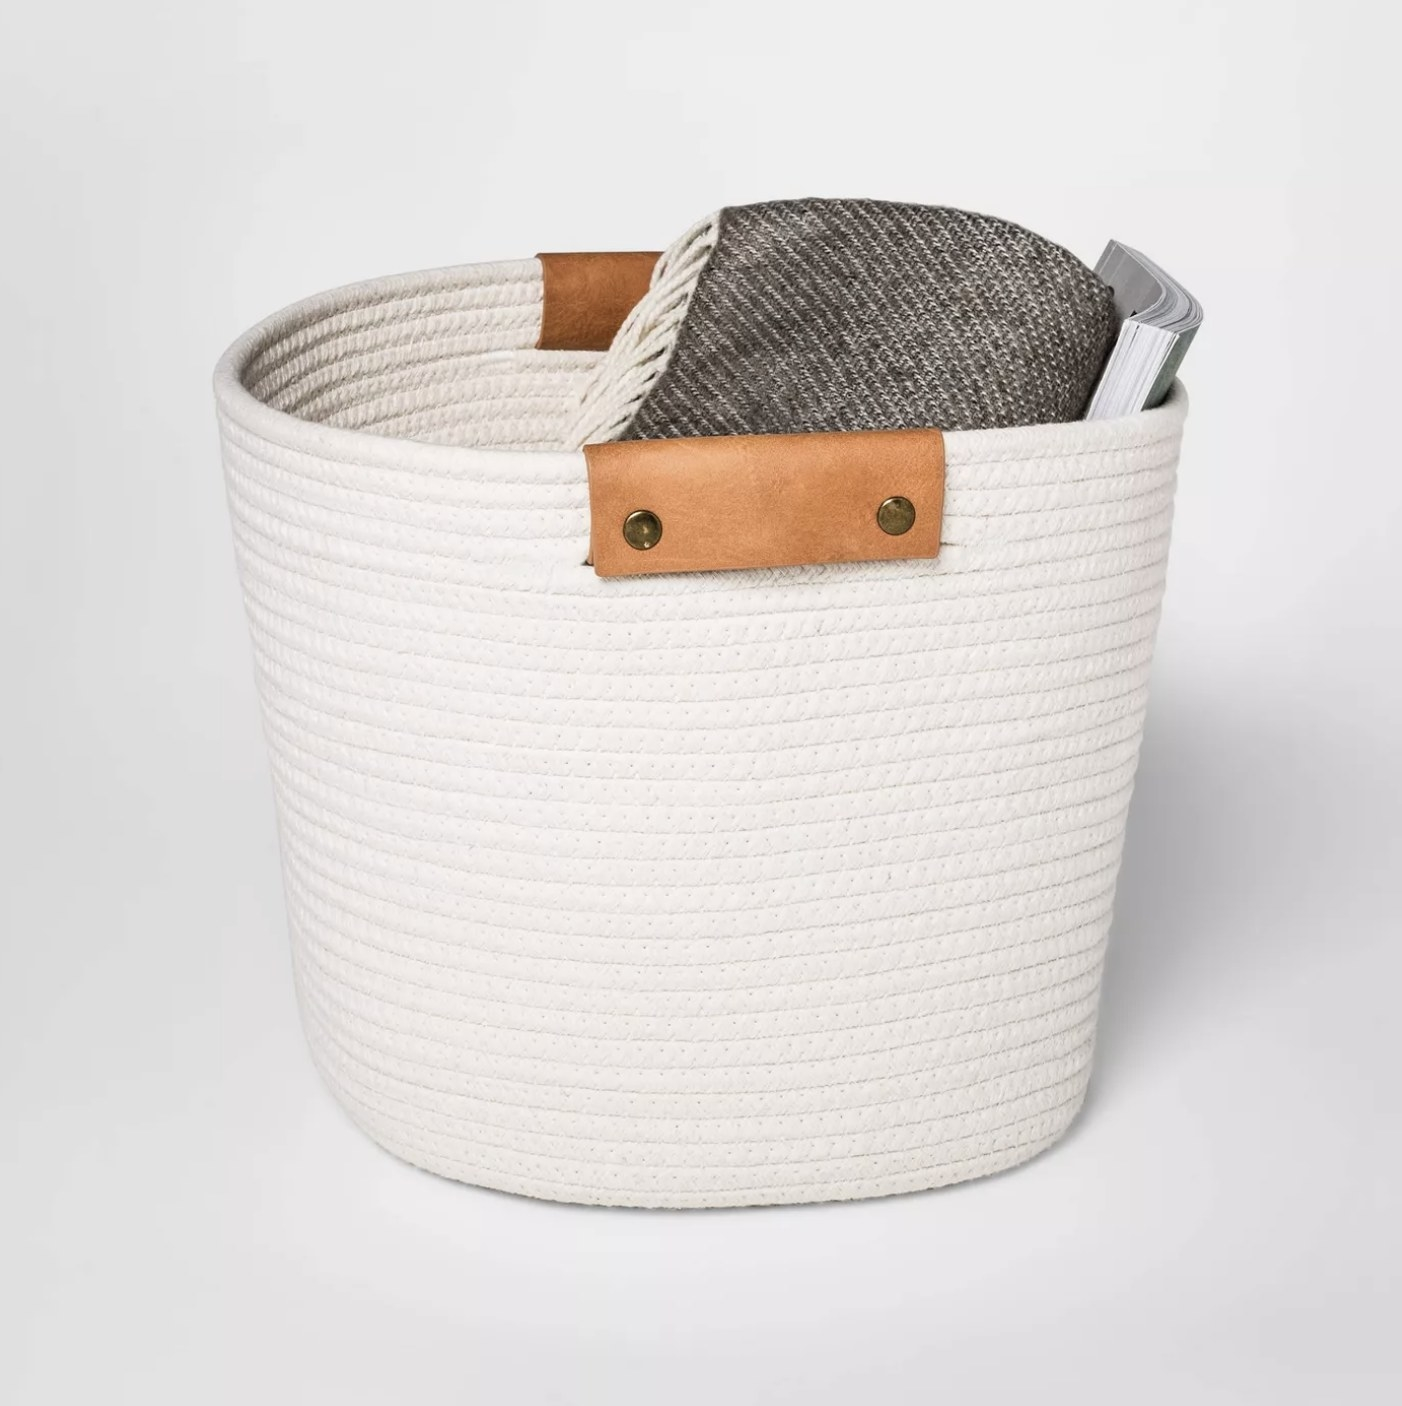 A white coiled rope basket